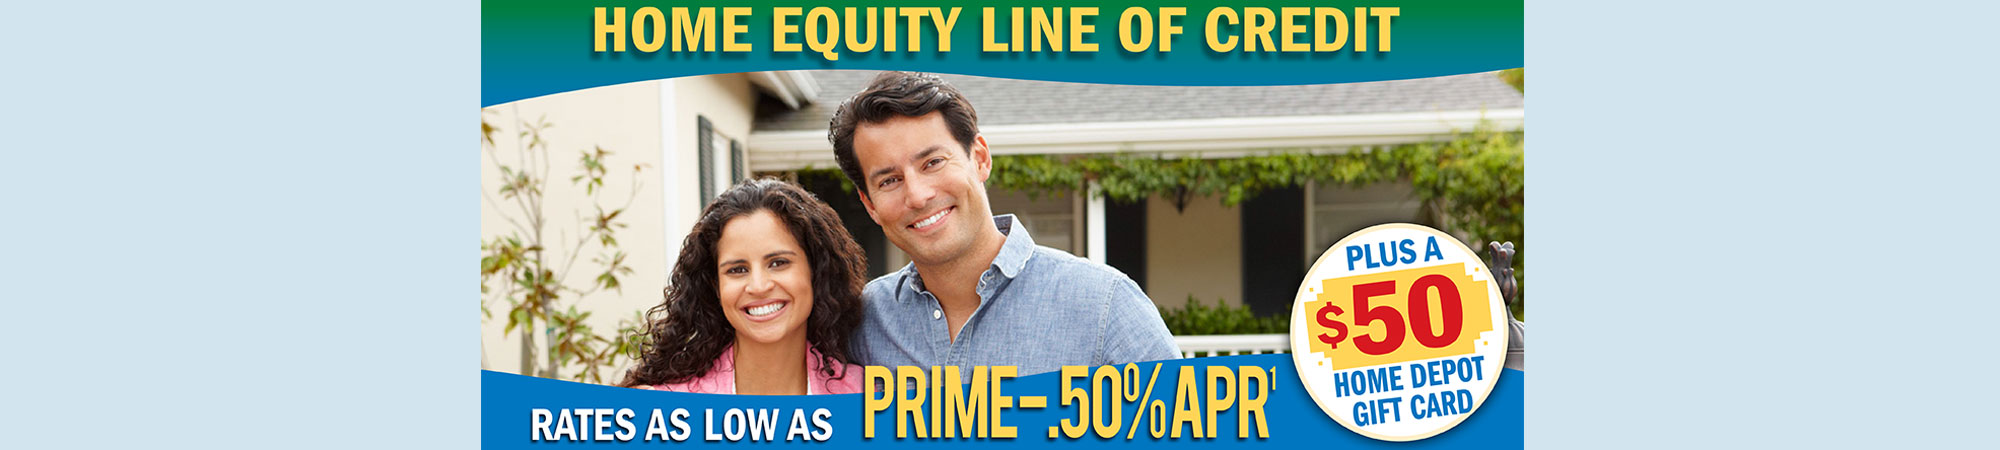 Home Equity Line of Credit rates as low as prime minus .50% apr